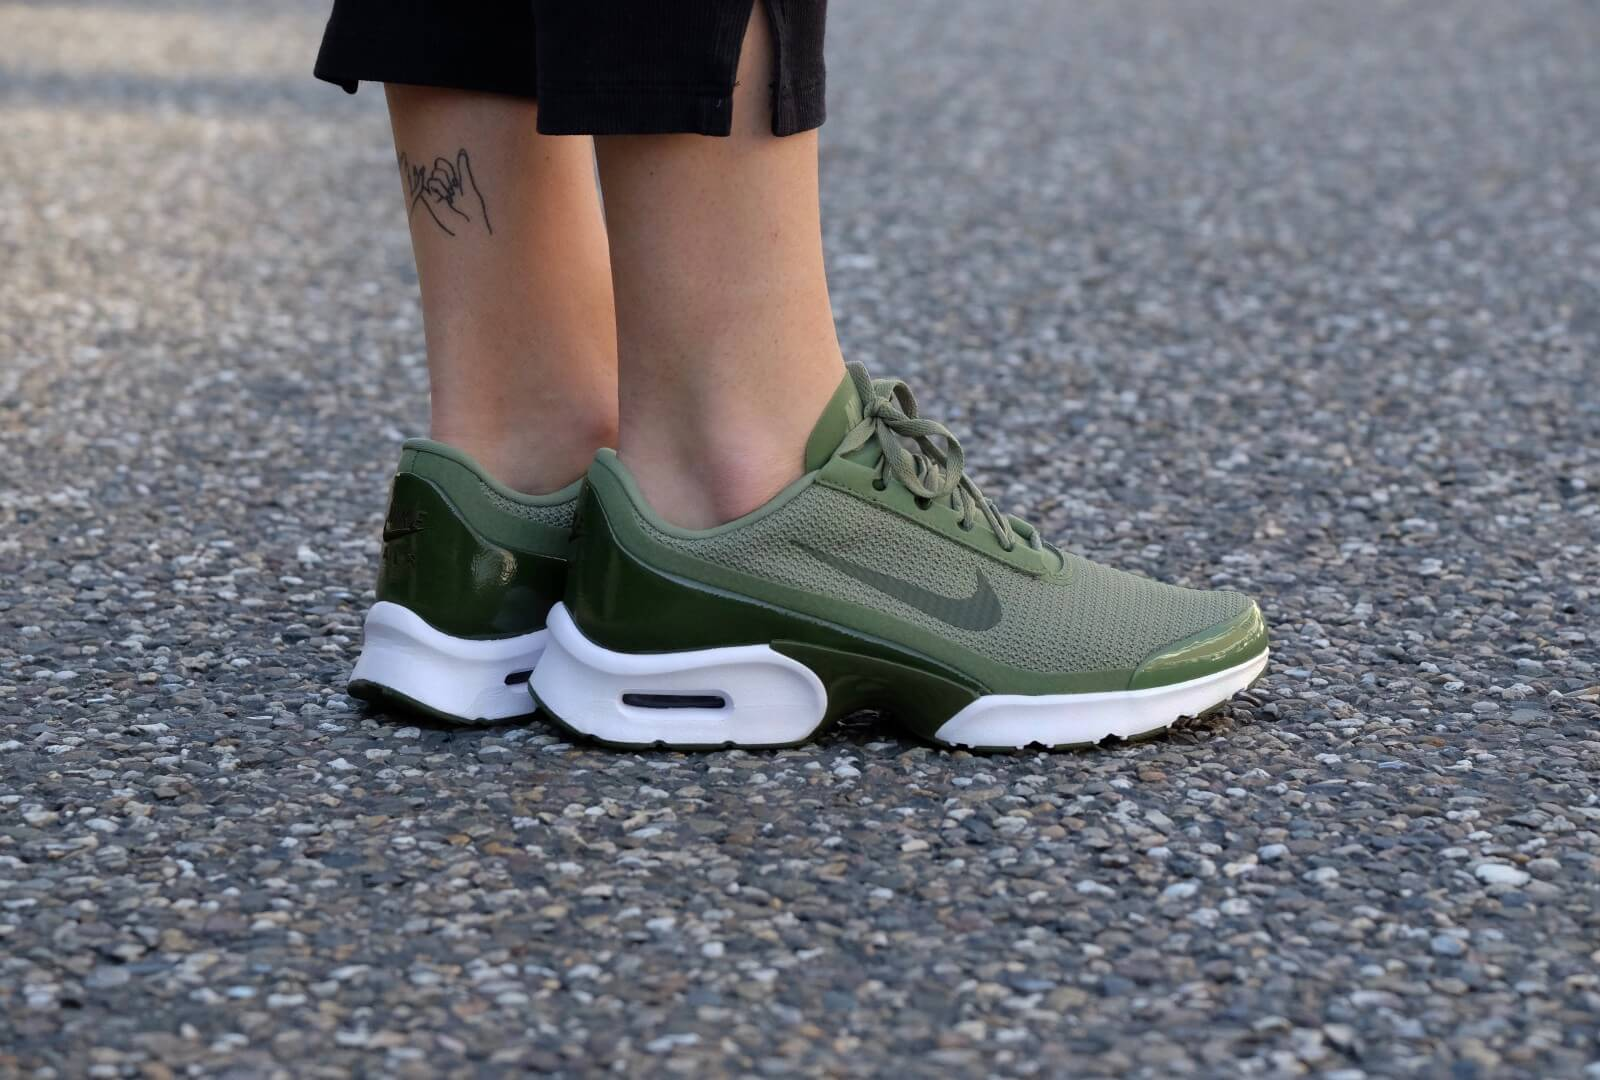 Nike WMNS Air Max Jewell Palm GreenLegion Green White Black 896194 300